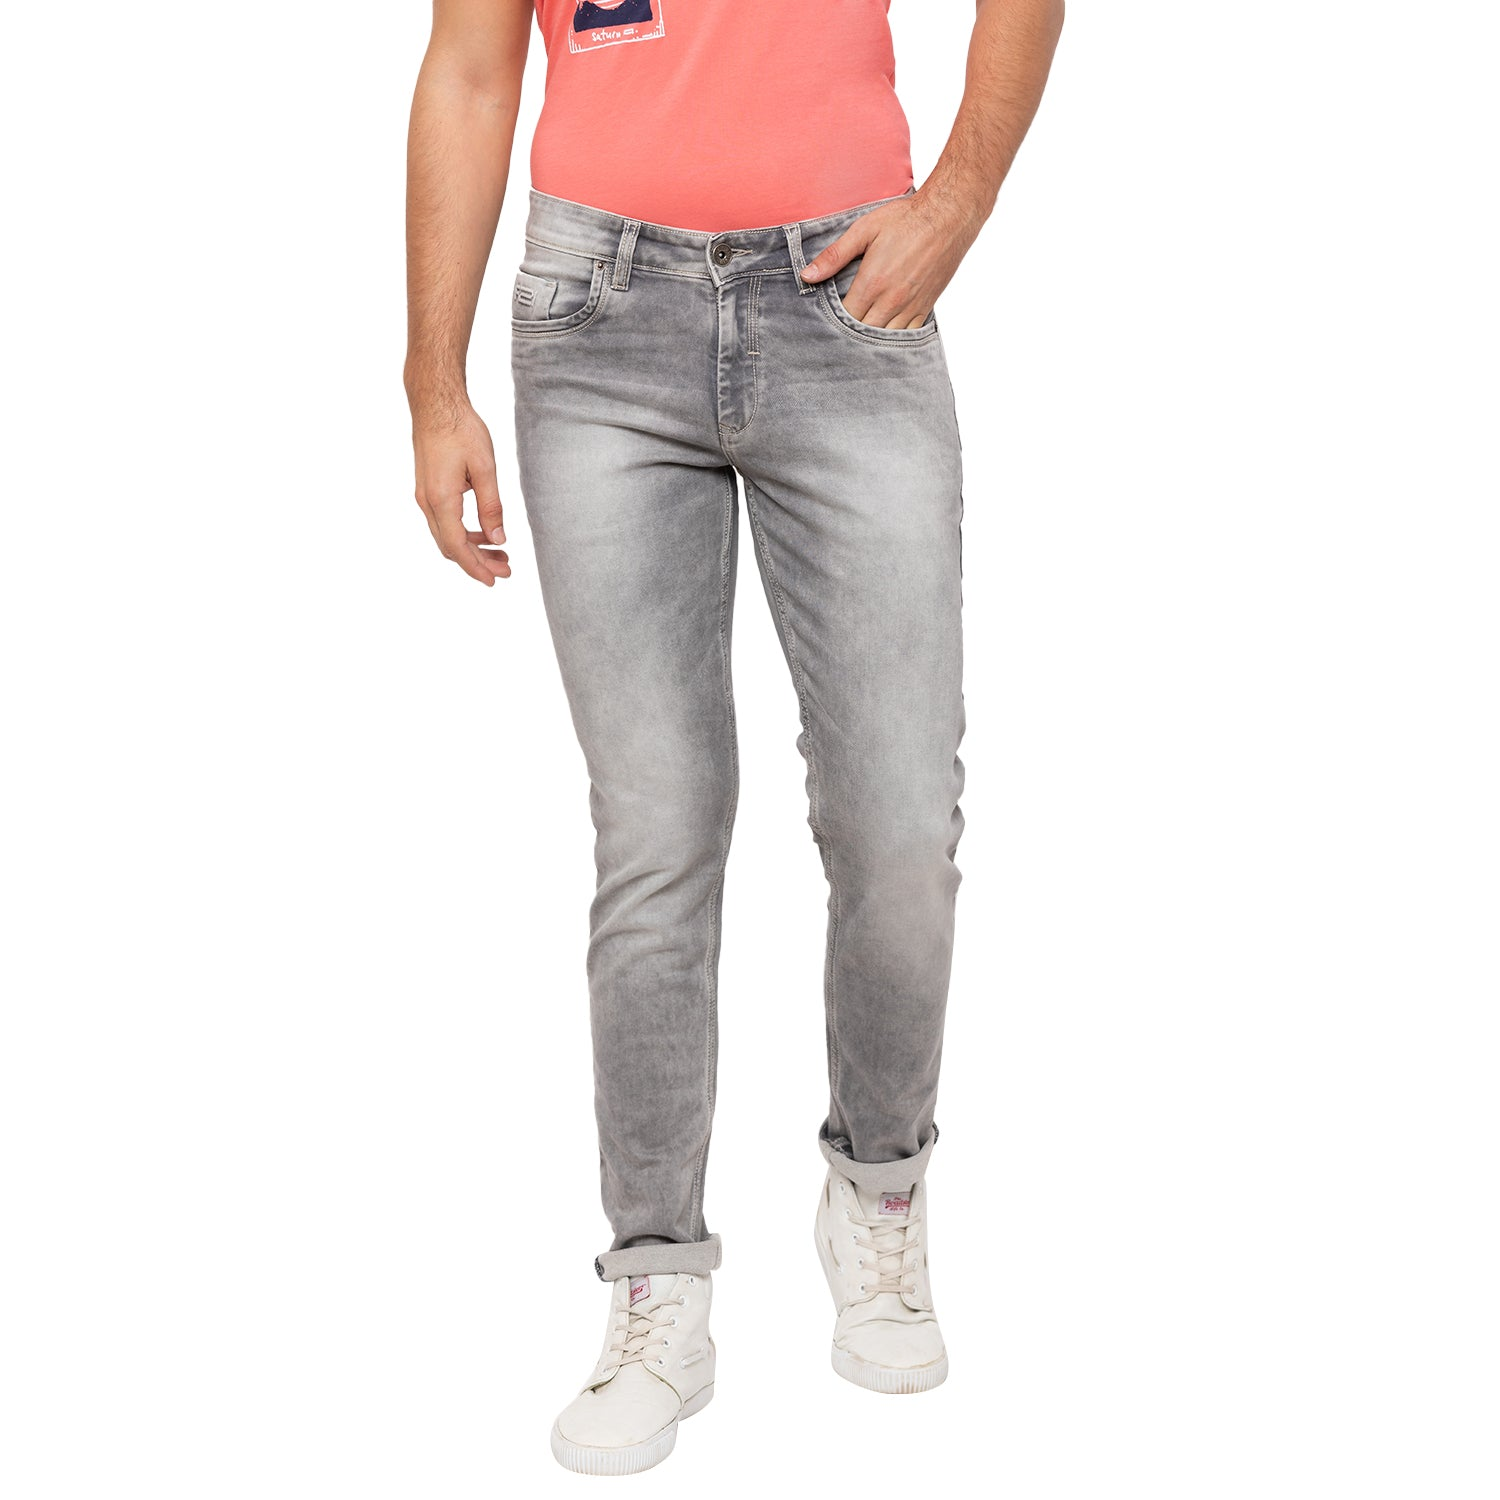 Globus Grey Washed Clean Look Jeans-1